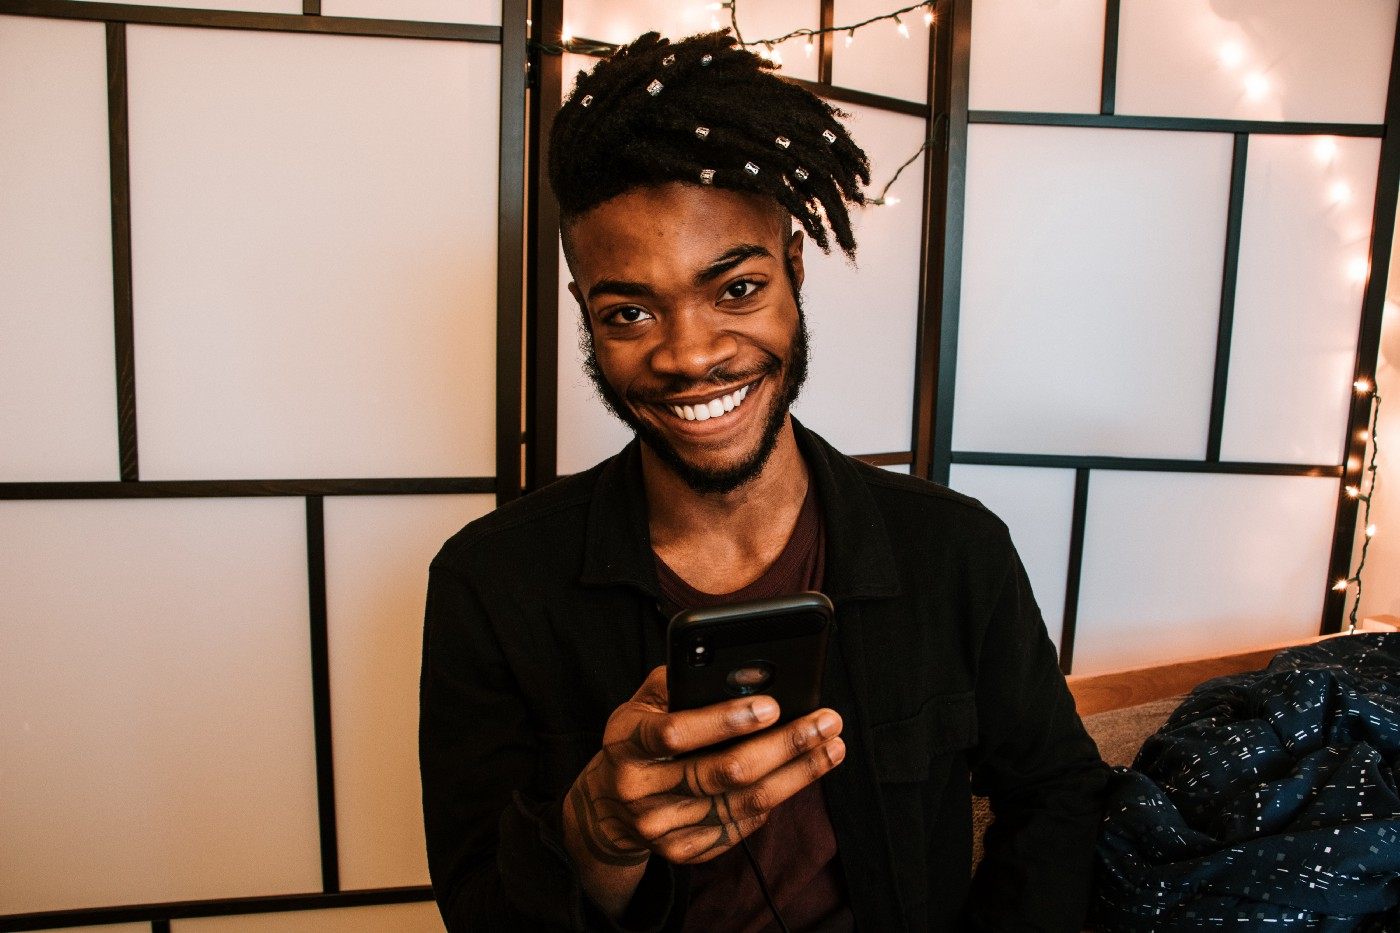 Smiling person with smart phone.